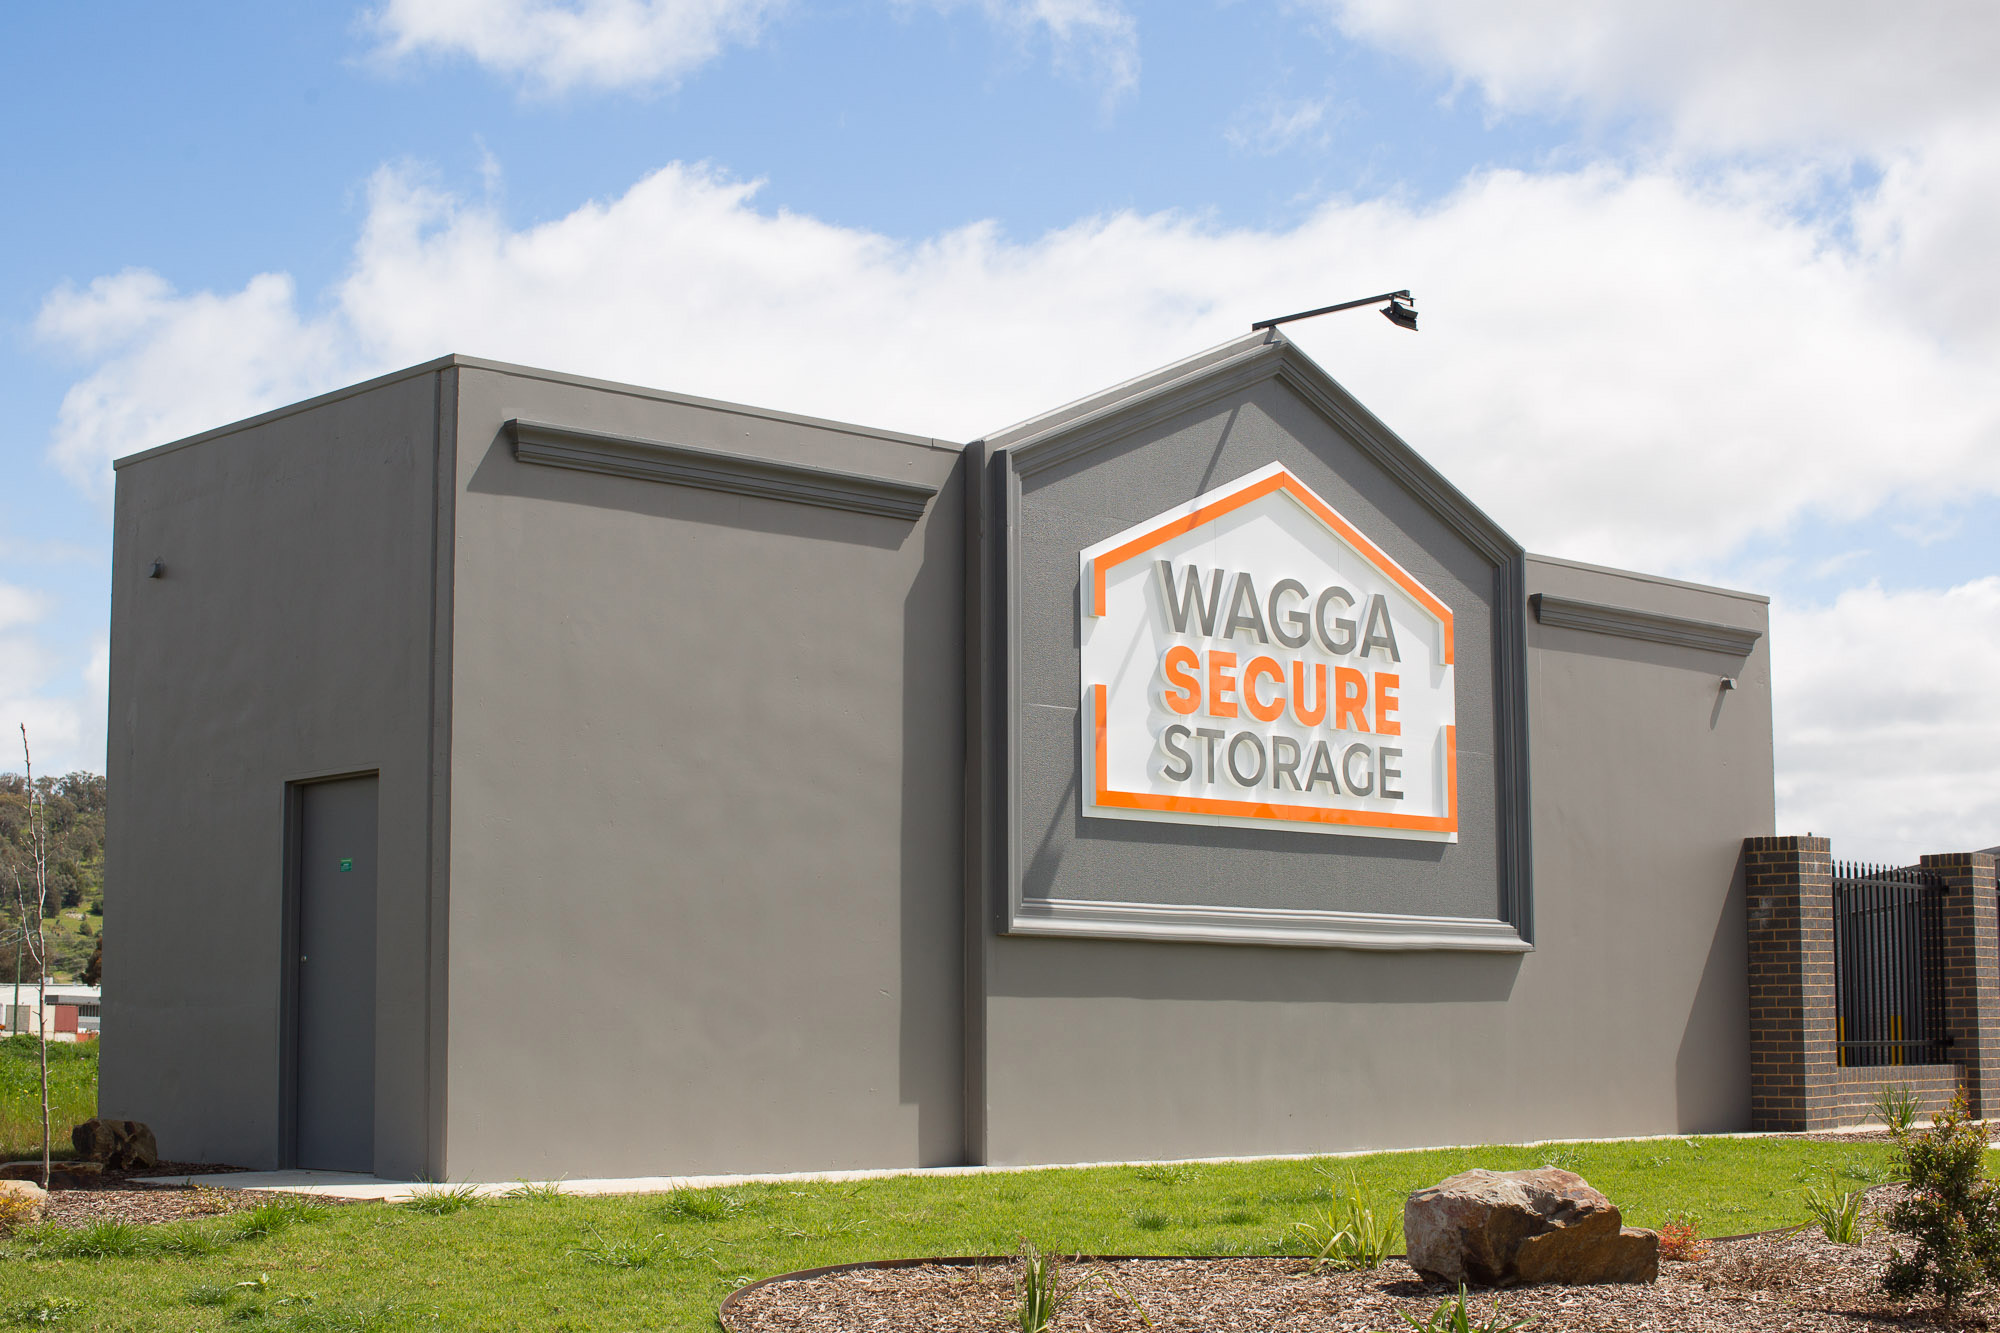 Welcome to Wagga Secure Storage